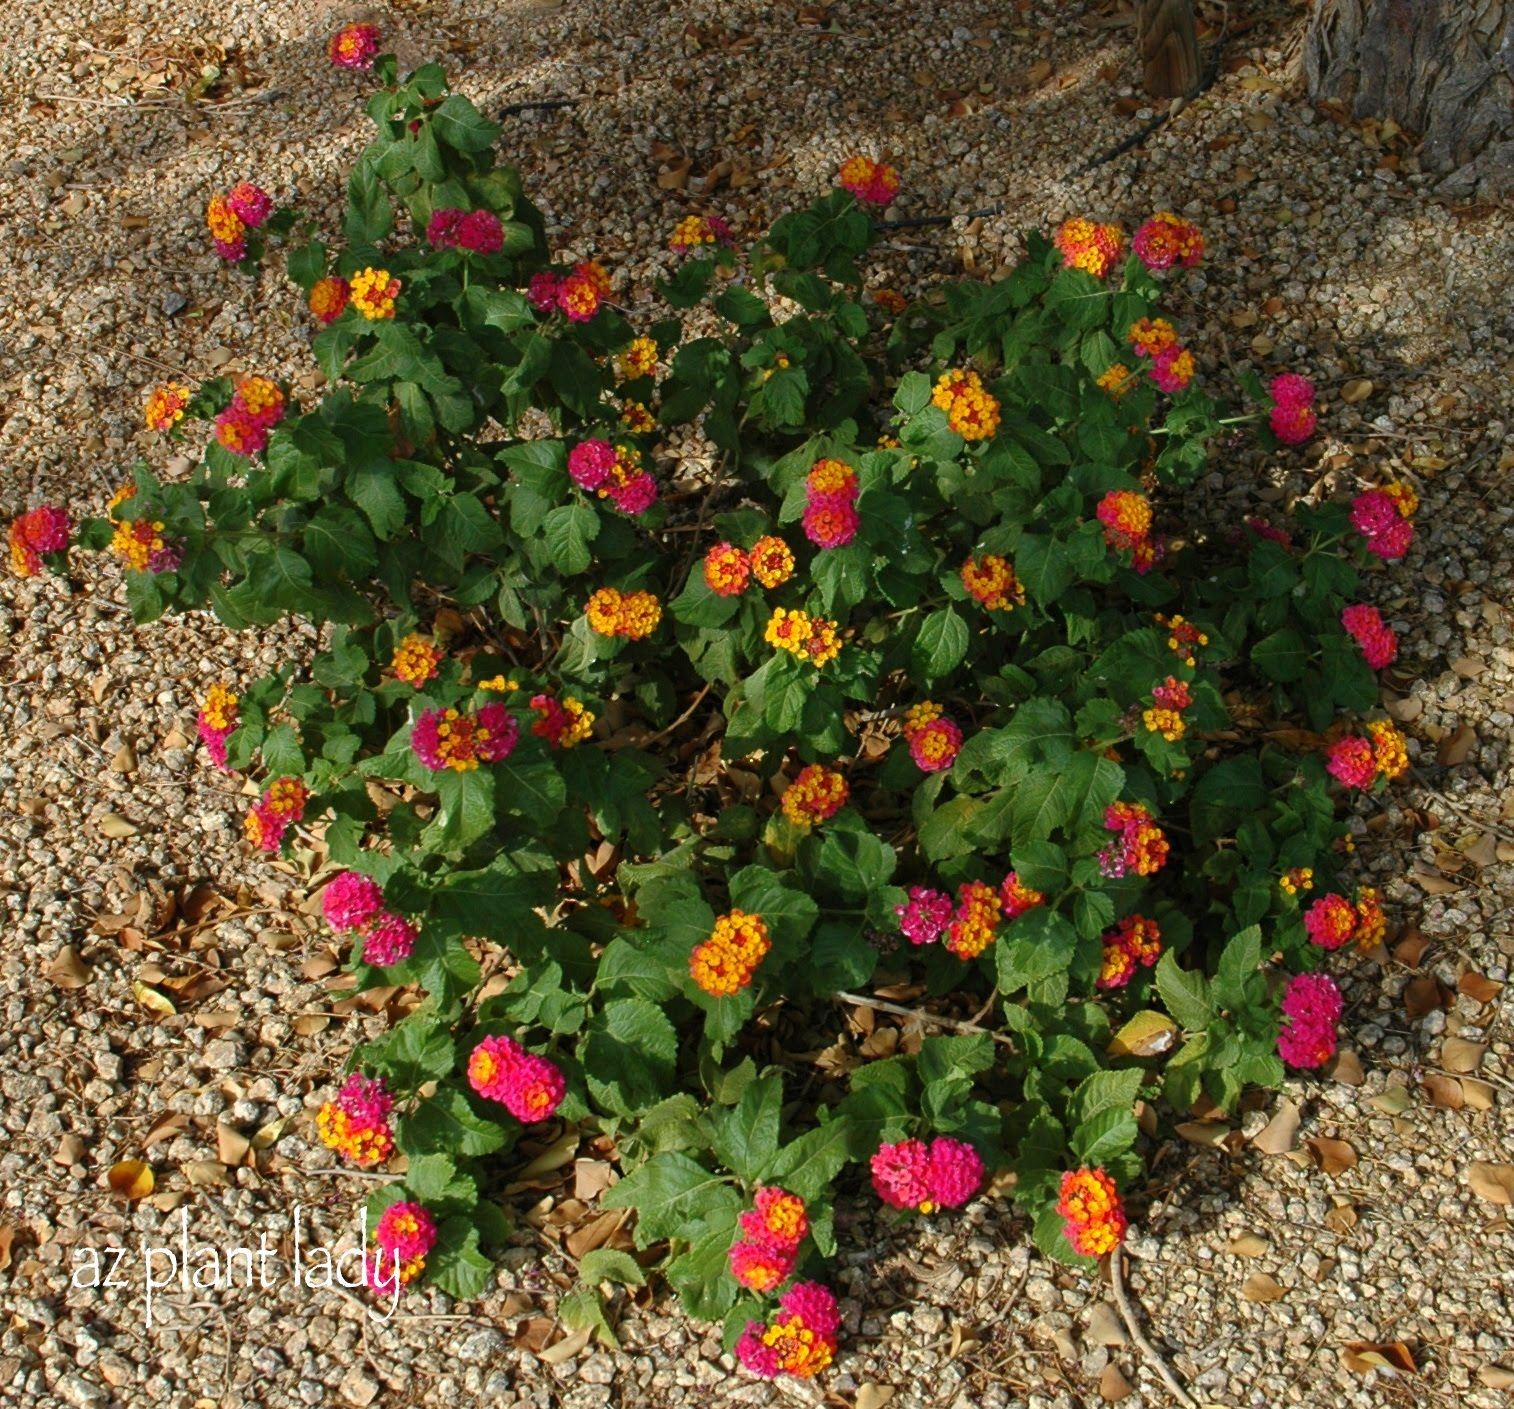 This is my lantana growing underneath my tree the photo was taken in